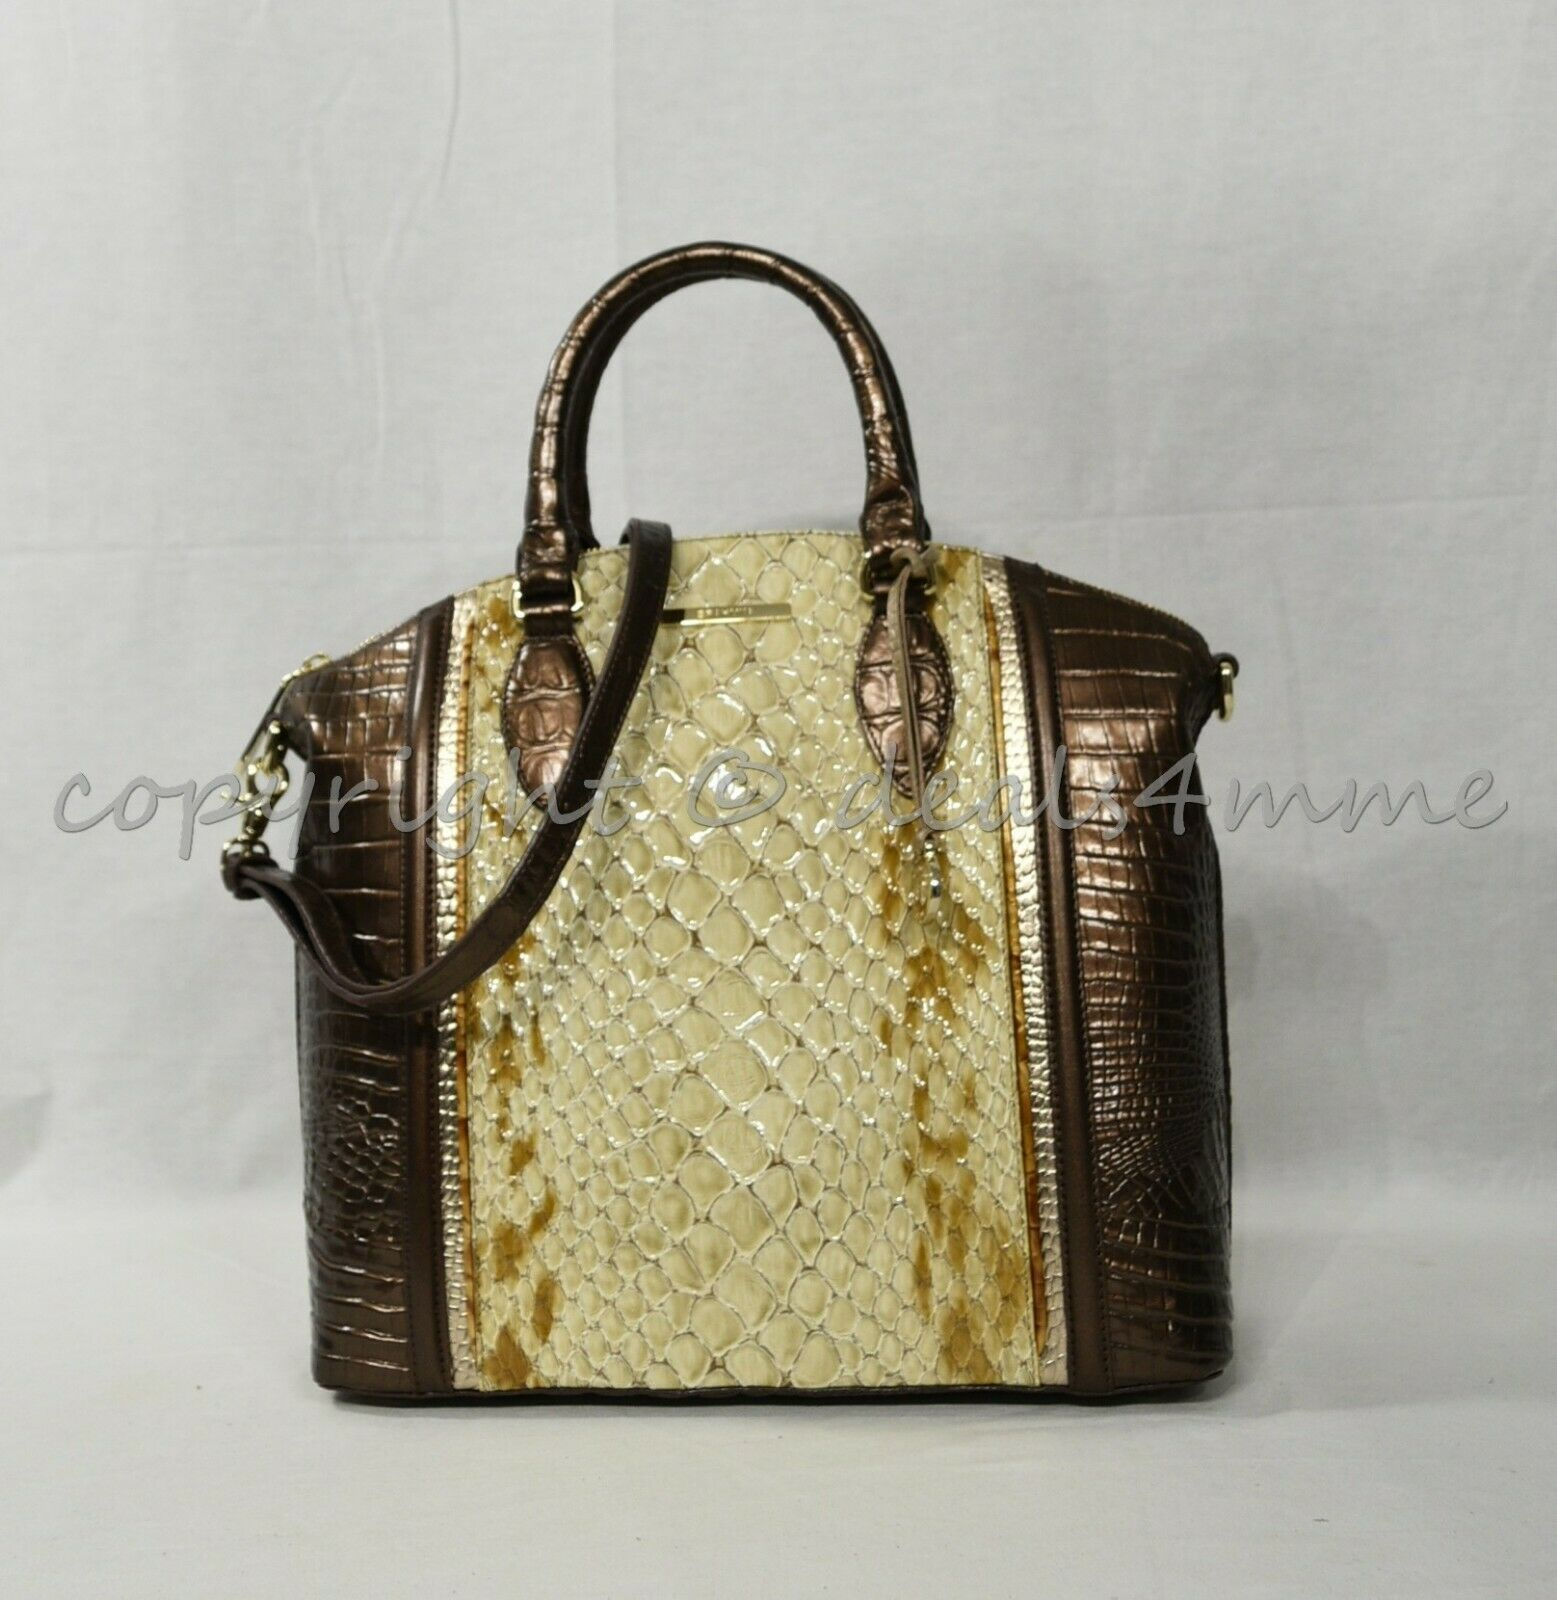 NWT Brahmin Large Duxbury Satchel/Shoulder Bag in Honey Carlisle image 10